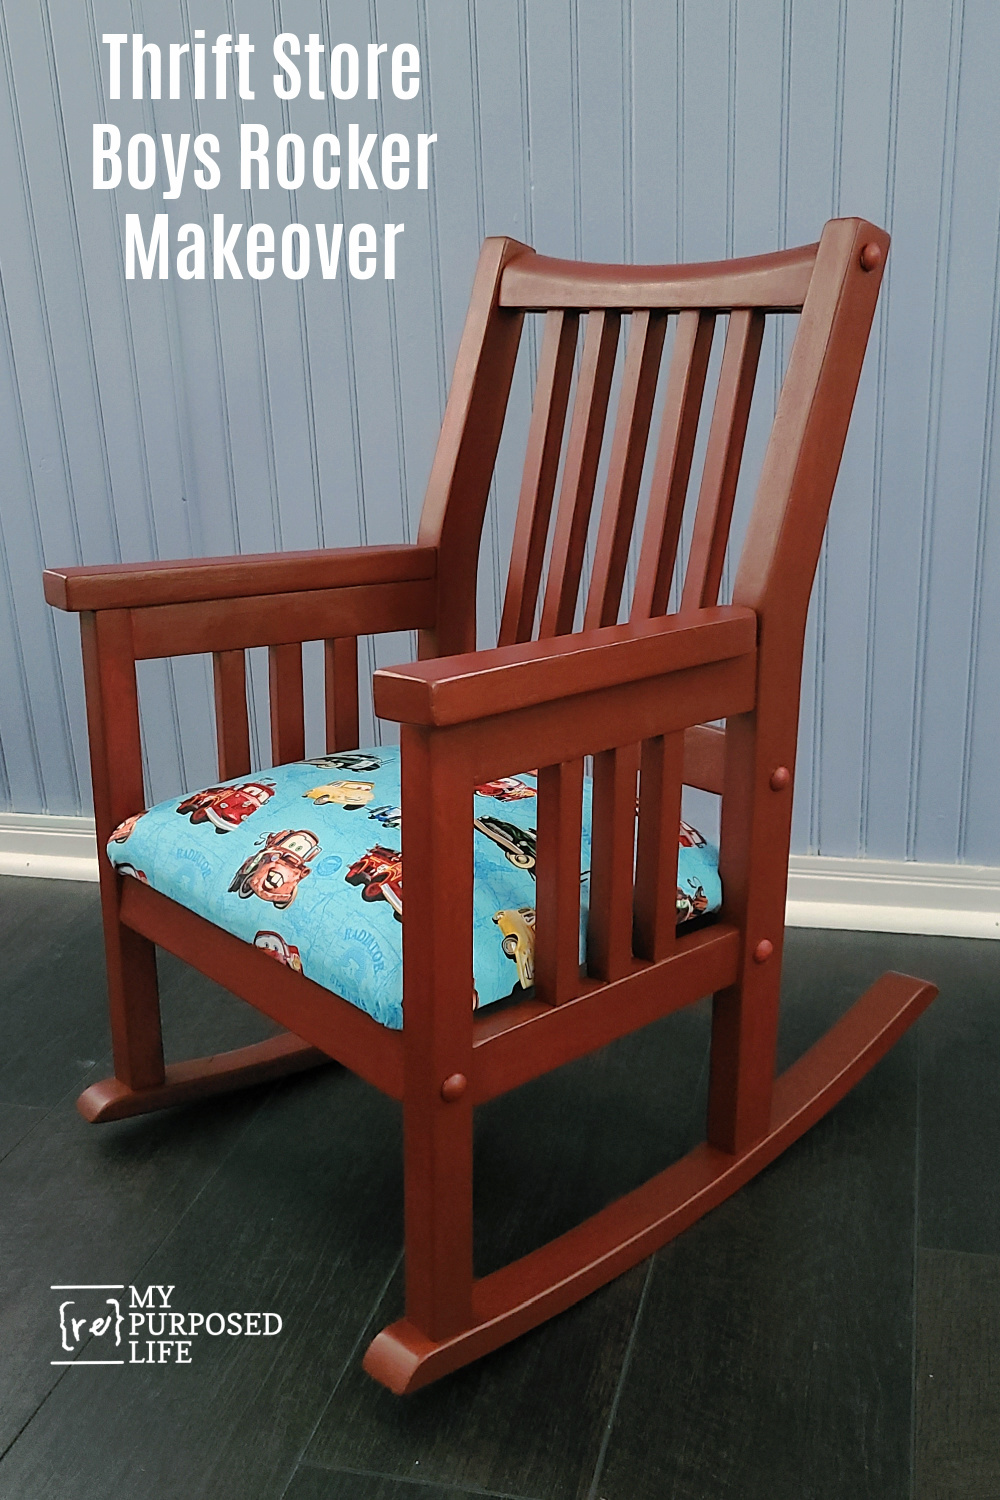 How to paint a boys rocking chair red and recover the seat using CARS fabric with Mater and Lightning McQueen. Movie fans will love it! Lots of tips for an easy makeover. #MyRepurposedLife #kidsfurniture #rockingchair #cars #mater #lightningMcqueen via @repurposedlife